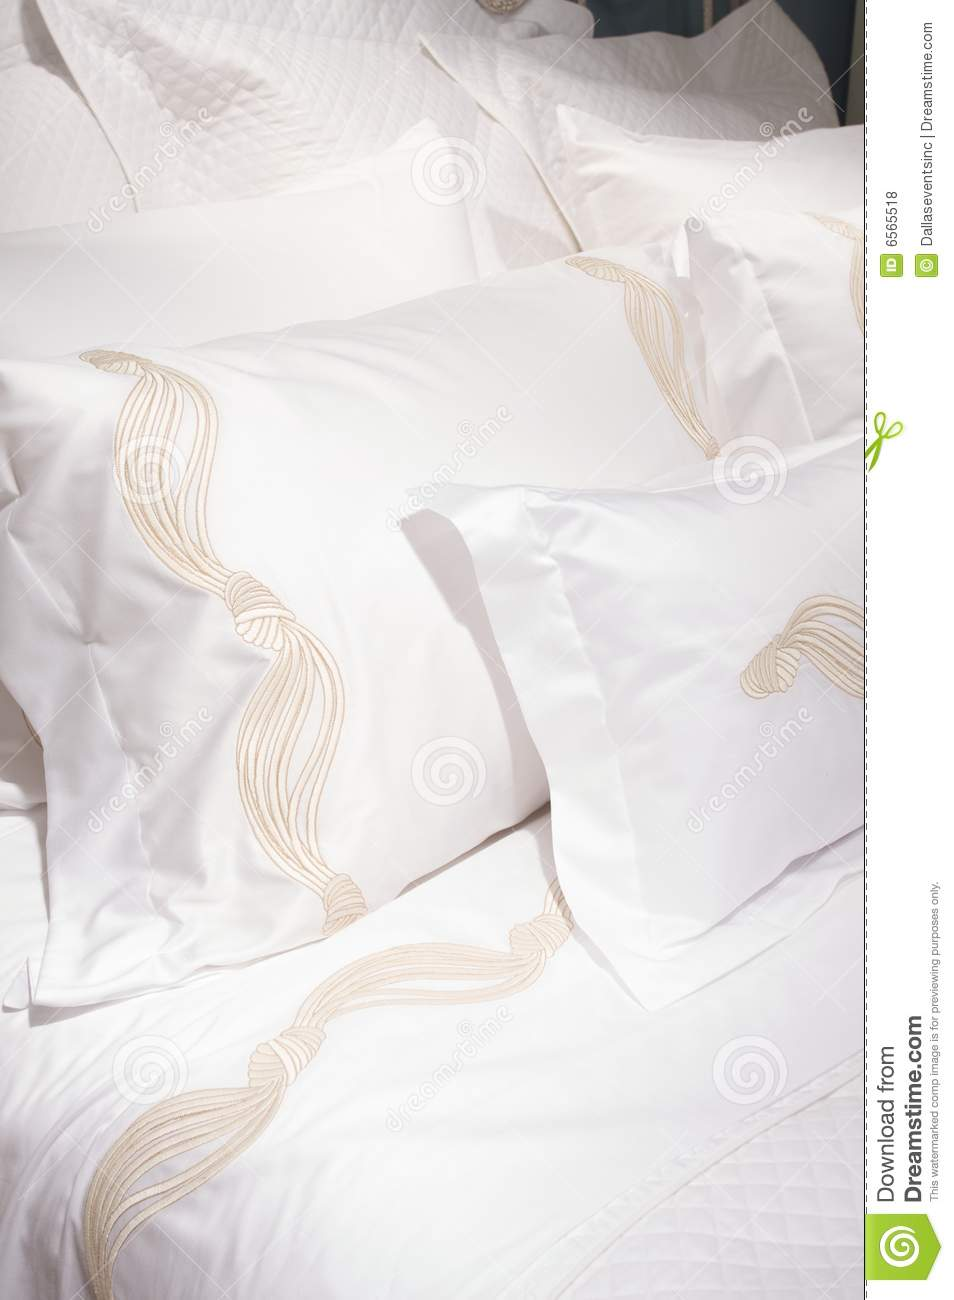 Luxury Upscale Bedding And Linens Royalty Free Stock